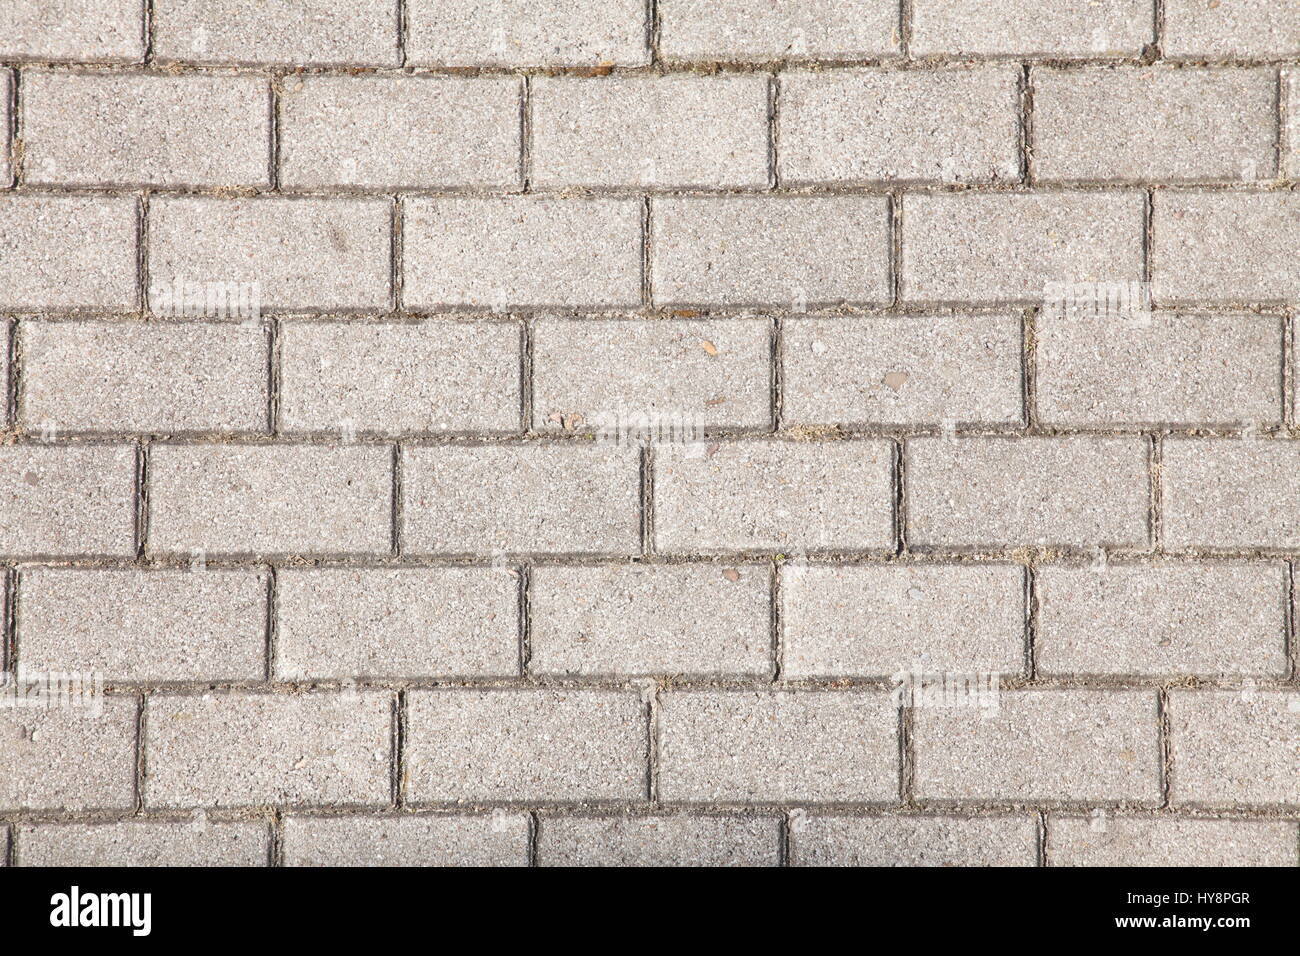 weisse wand photos & weisse wand images - alamy